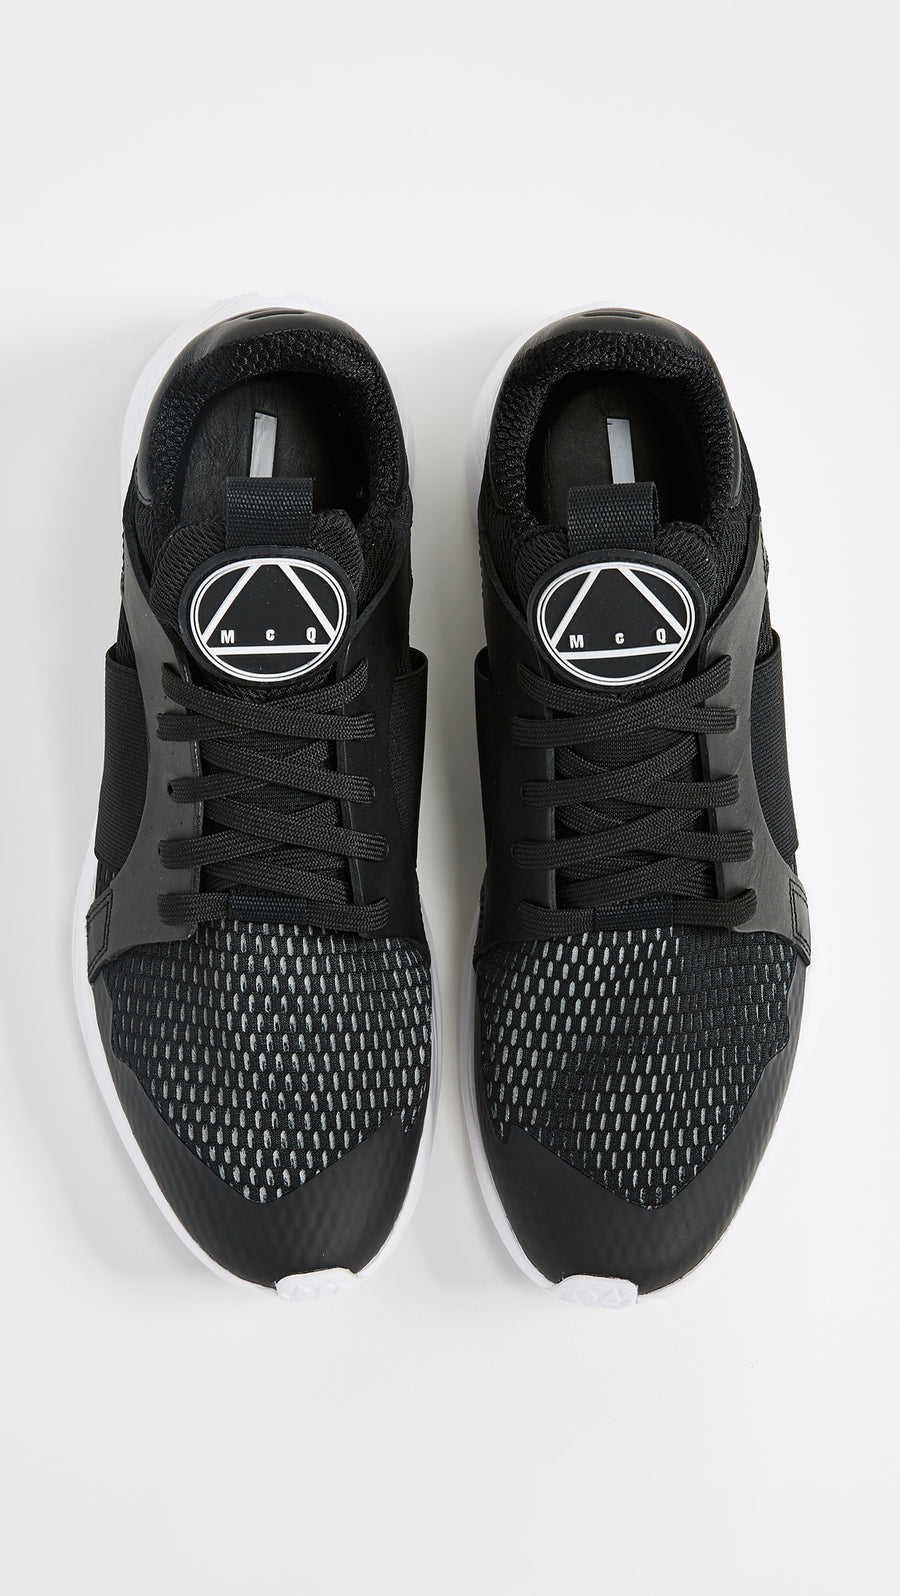 MCQ ALEXANDER MCQUEEN GISHIKI LOW SNEAKERS BLACK